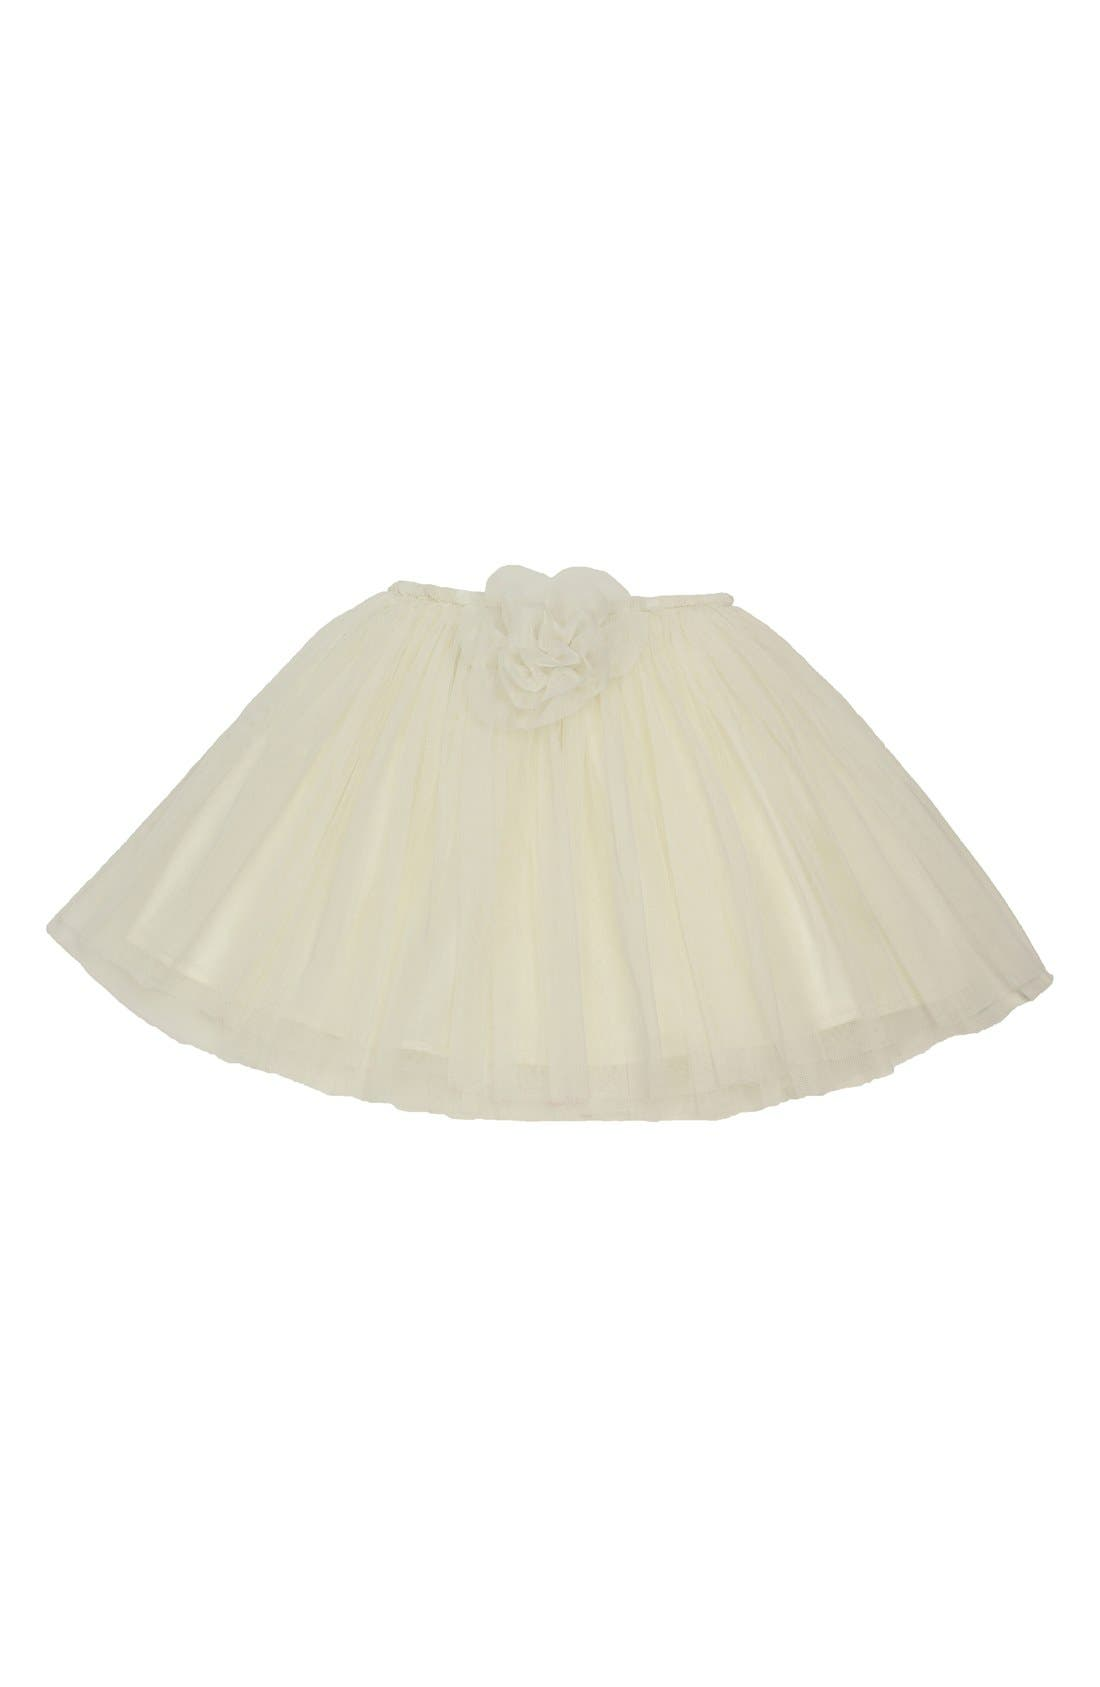 Main Image - POCHEW Flower Embellished Tutu (Toddler Girls & Little Girls)